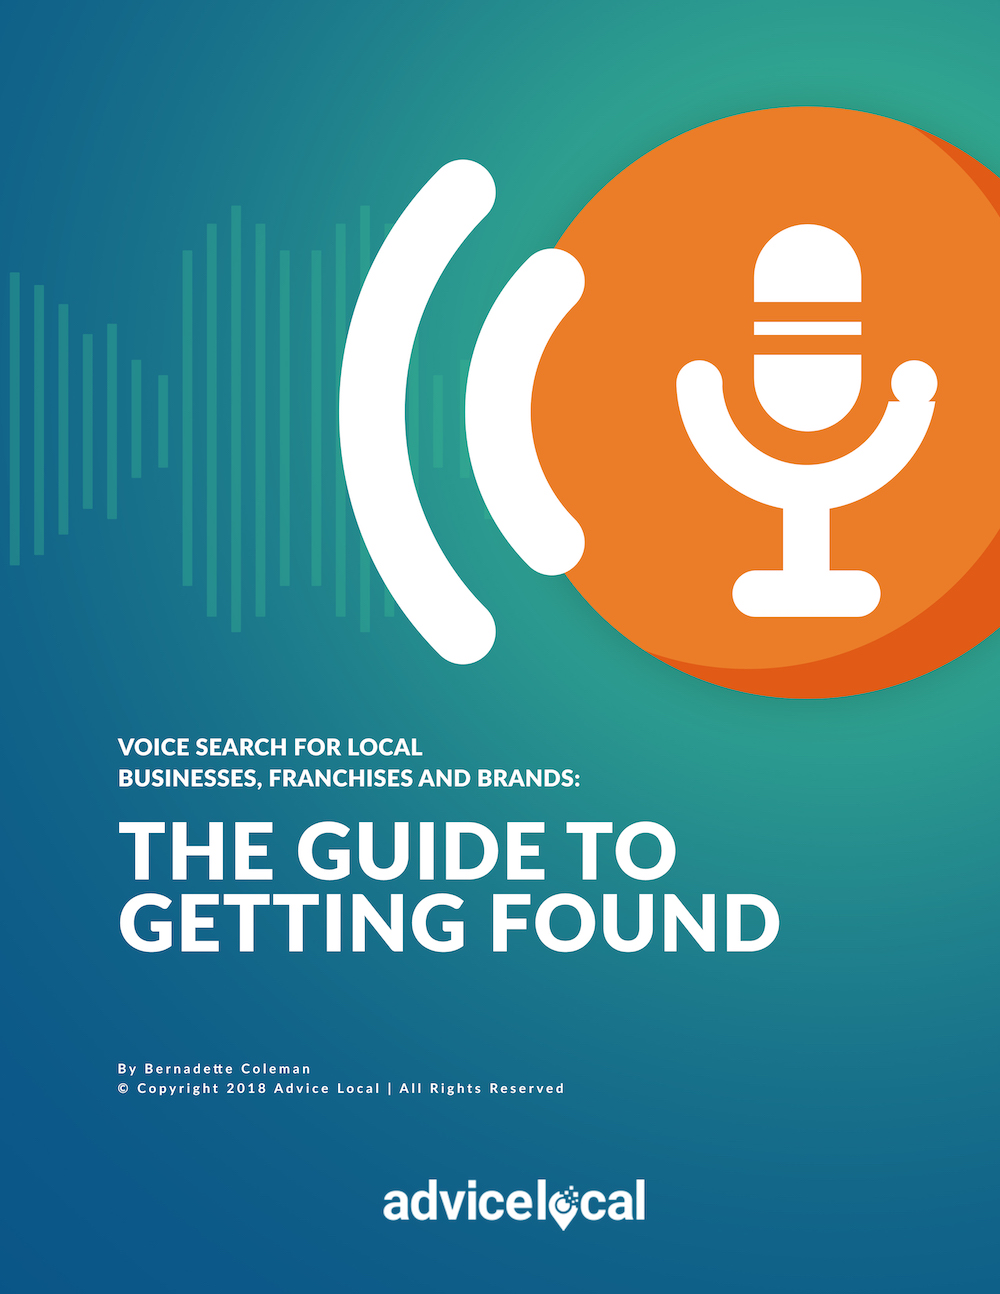 Voice Search for Local Businesses, Franchises and Brands: the Guide to Getting Found